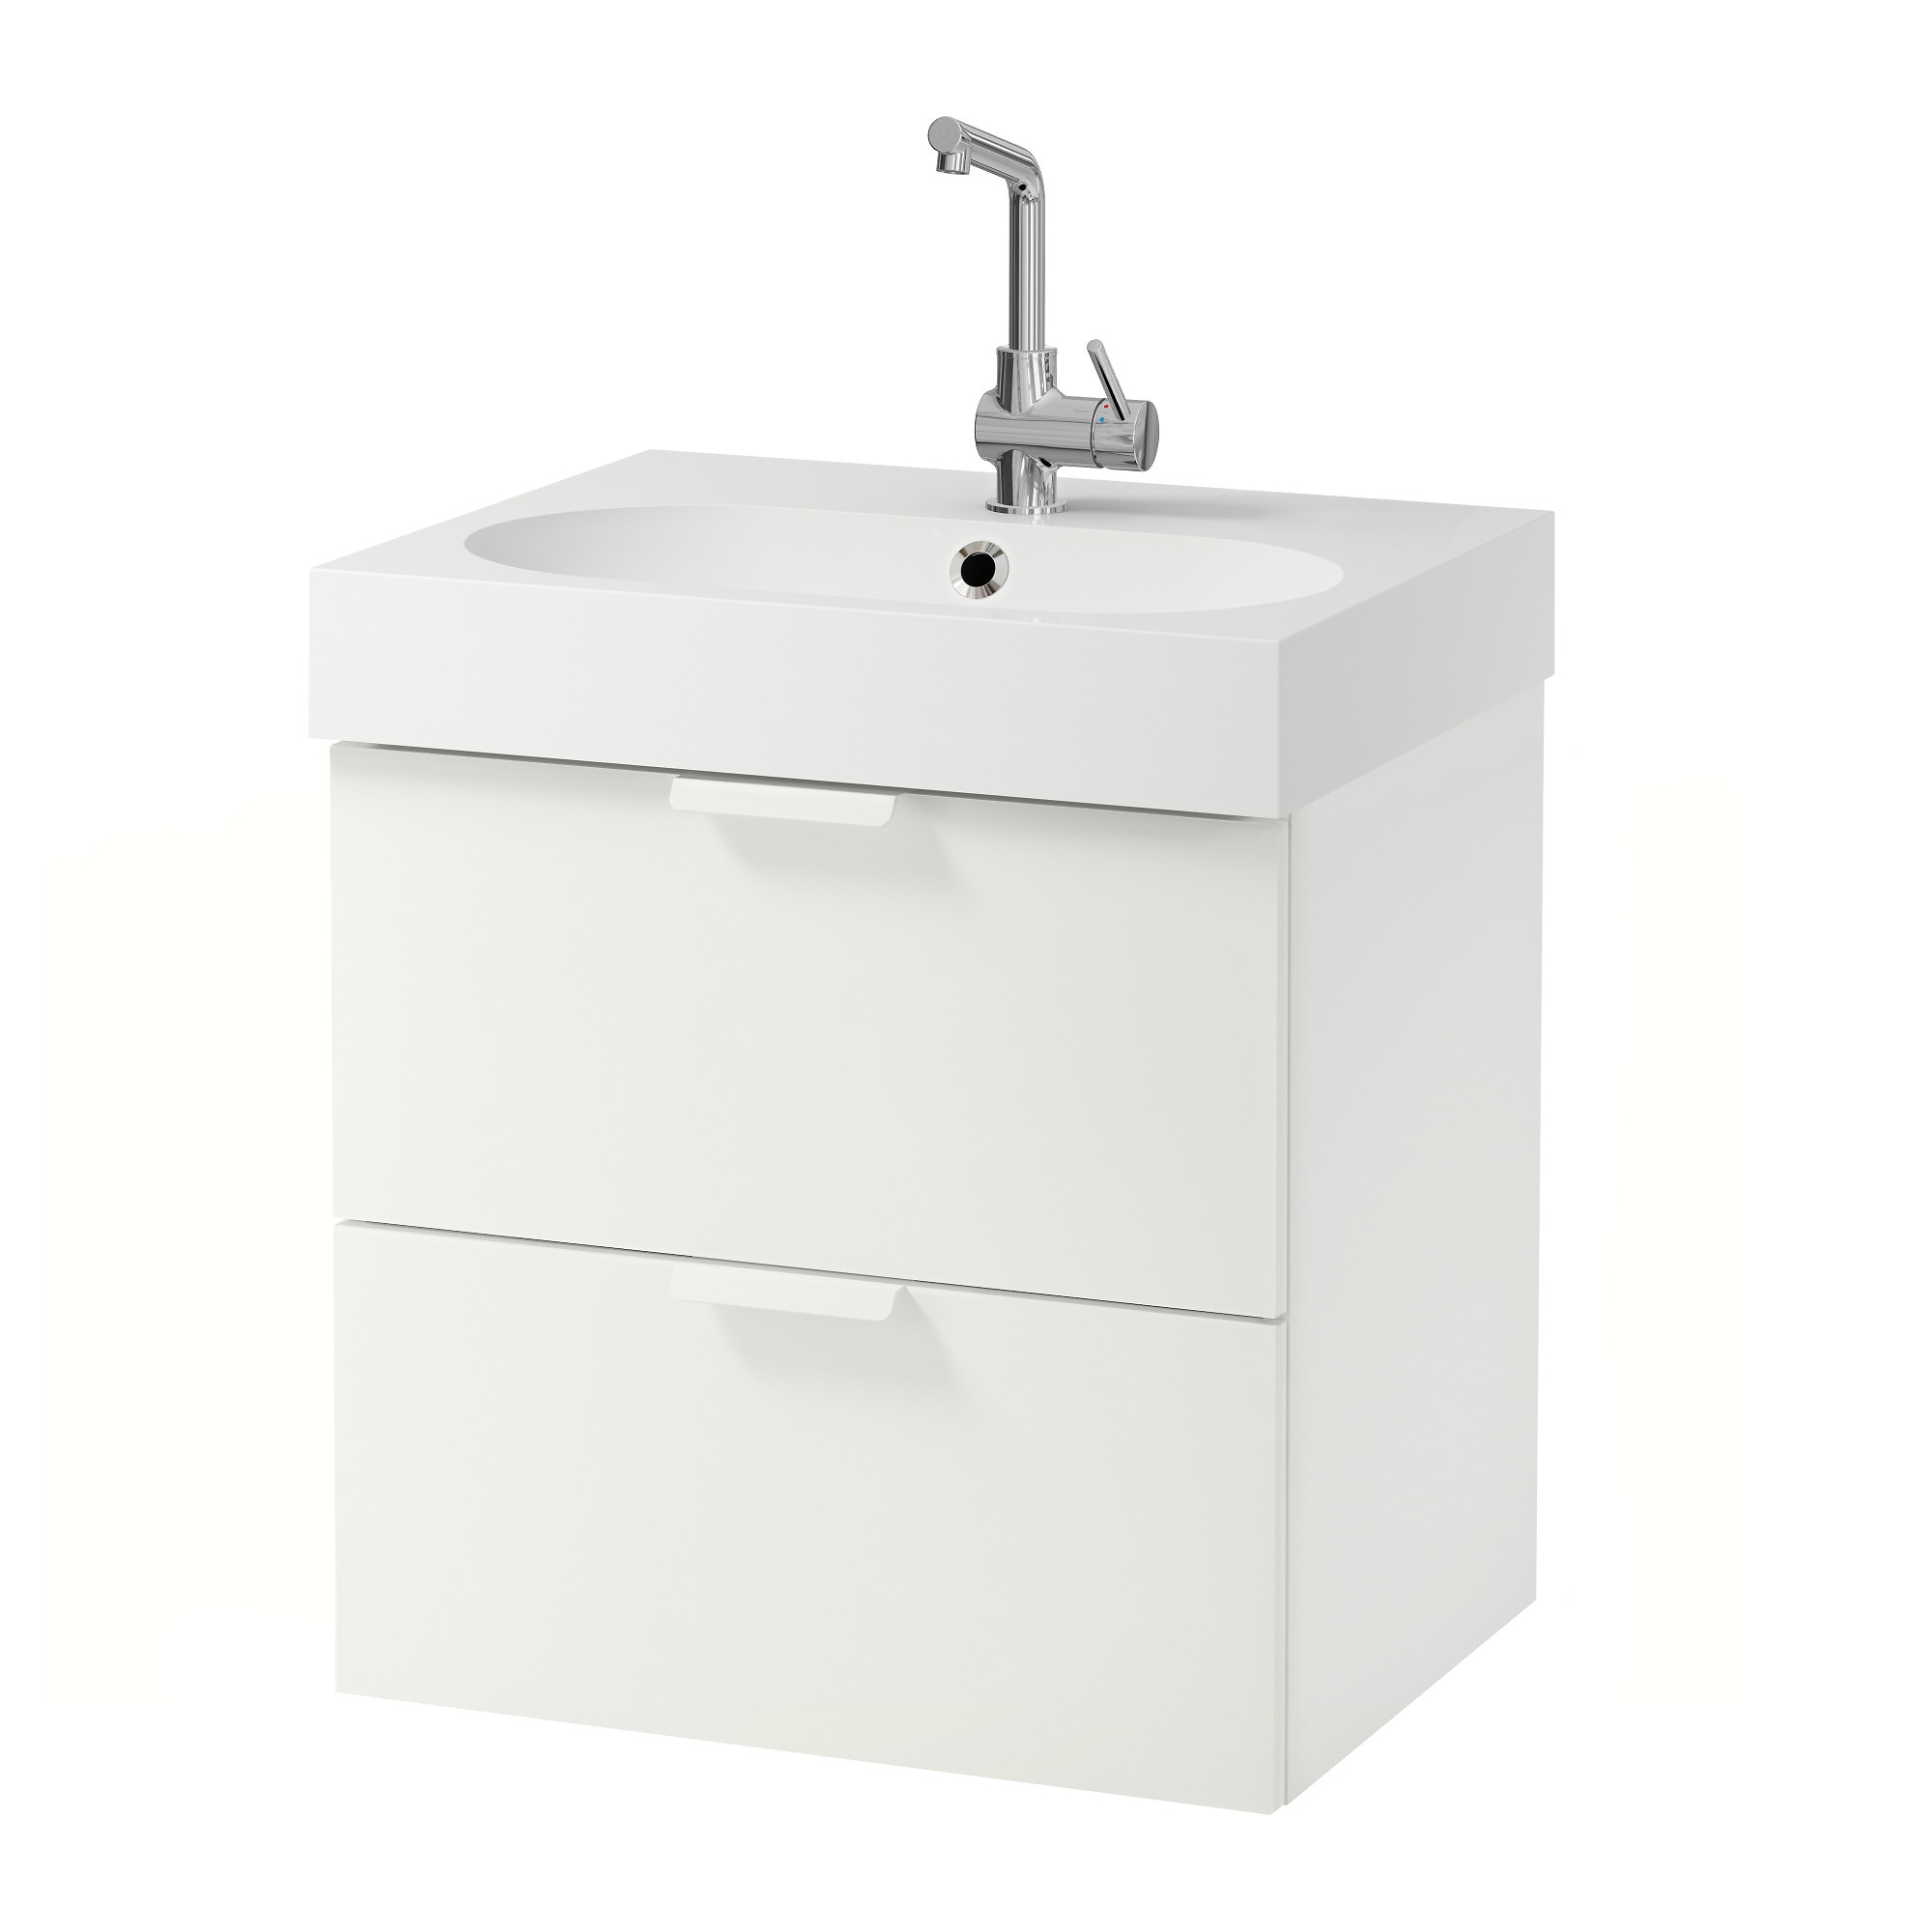 GODMORGON / BRÅVIKEN Sink Cabinet With 2 Drawers, White Width: 24 3/8